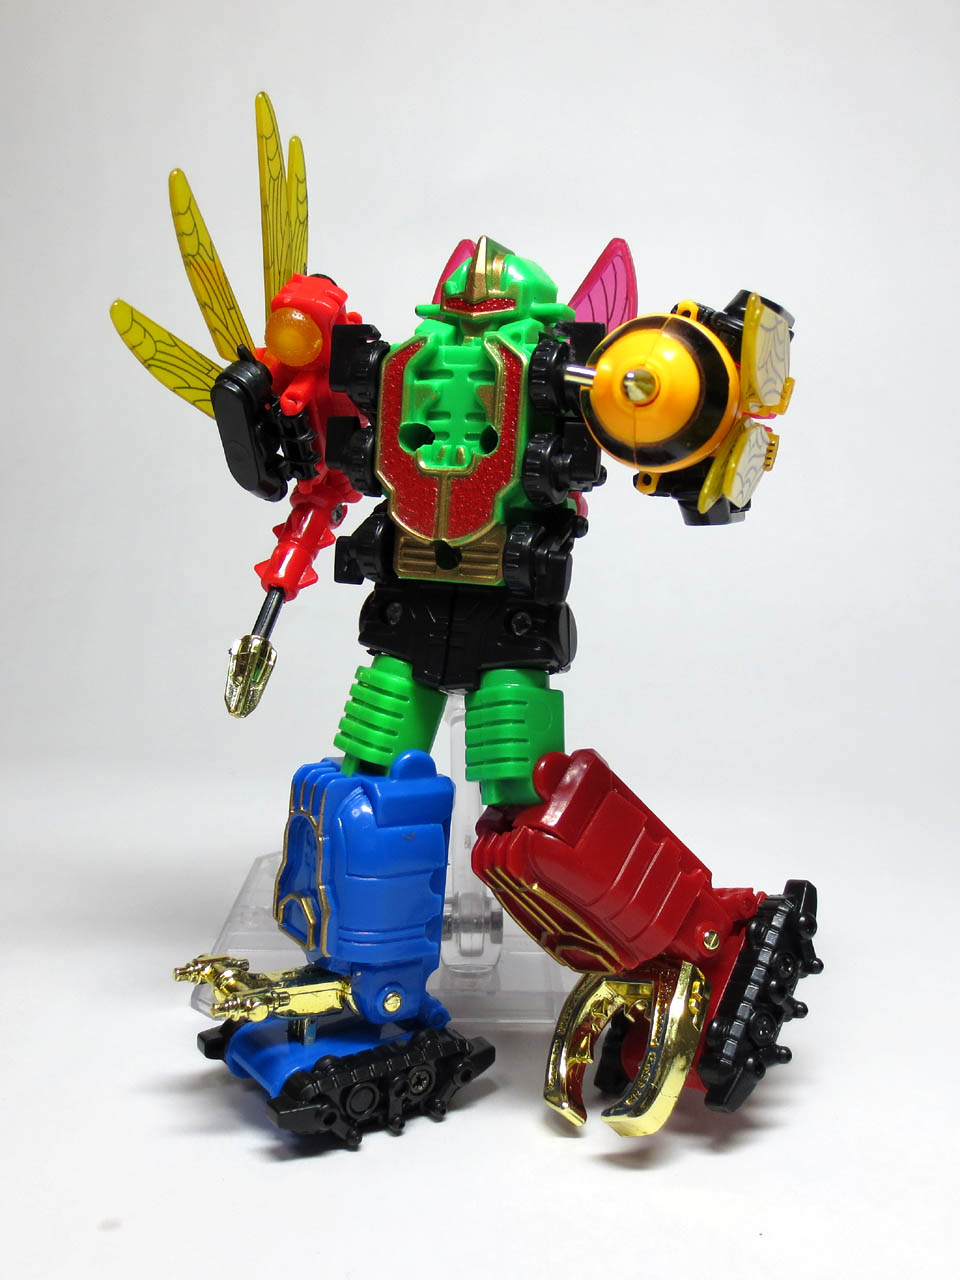 Insect_Combined_robot_37.jpg